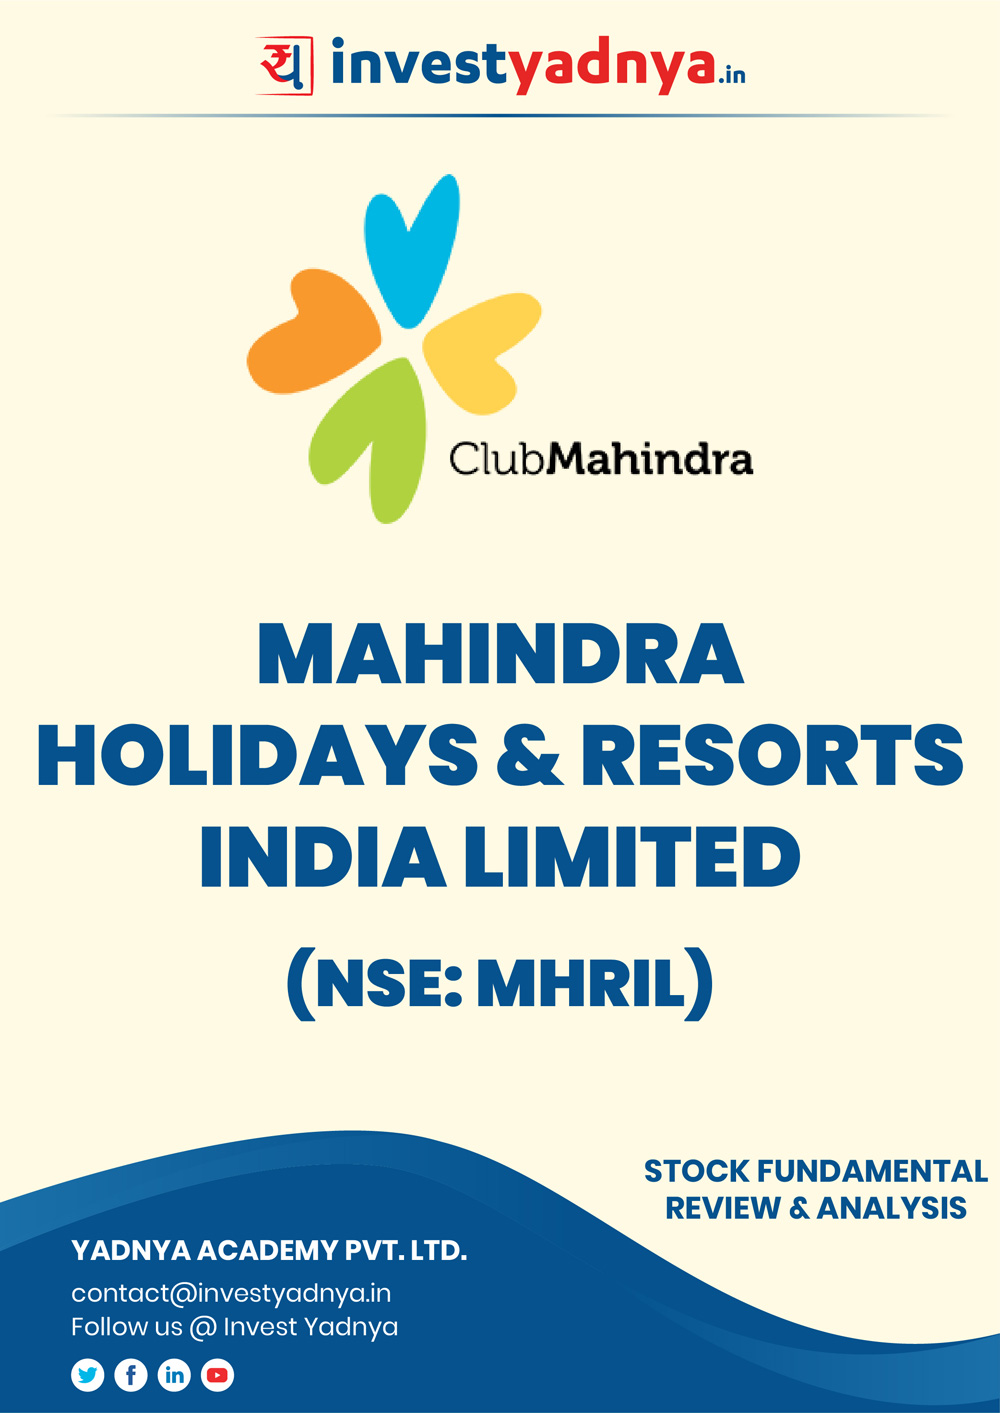 This e-book contains in-depth fundamental analysis of Mahindra Hotel Resorts considering both Financial and Equity Research Parameters. It reviews the company, industry competitors, shareholding pattern, financials, and annual performance. ✔ Detailed Research ✔ Quality Reports